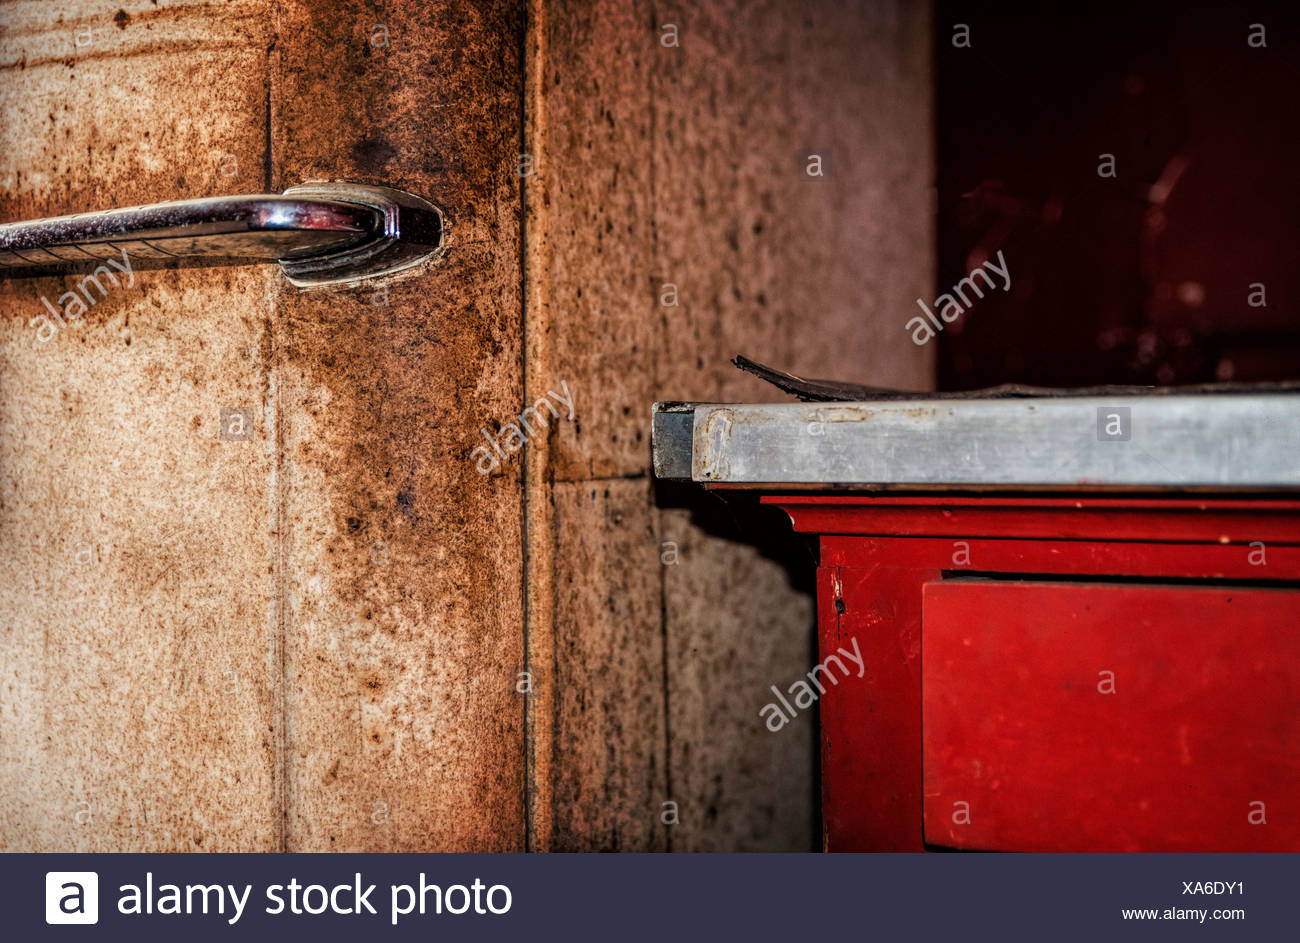 Detail of rusted old fridge and kitchen counter. - Stock Image